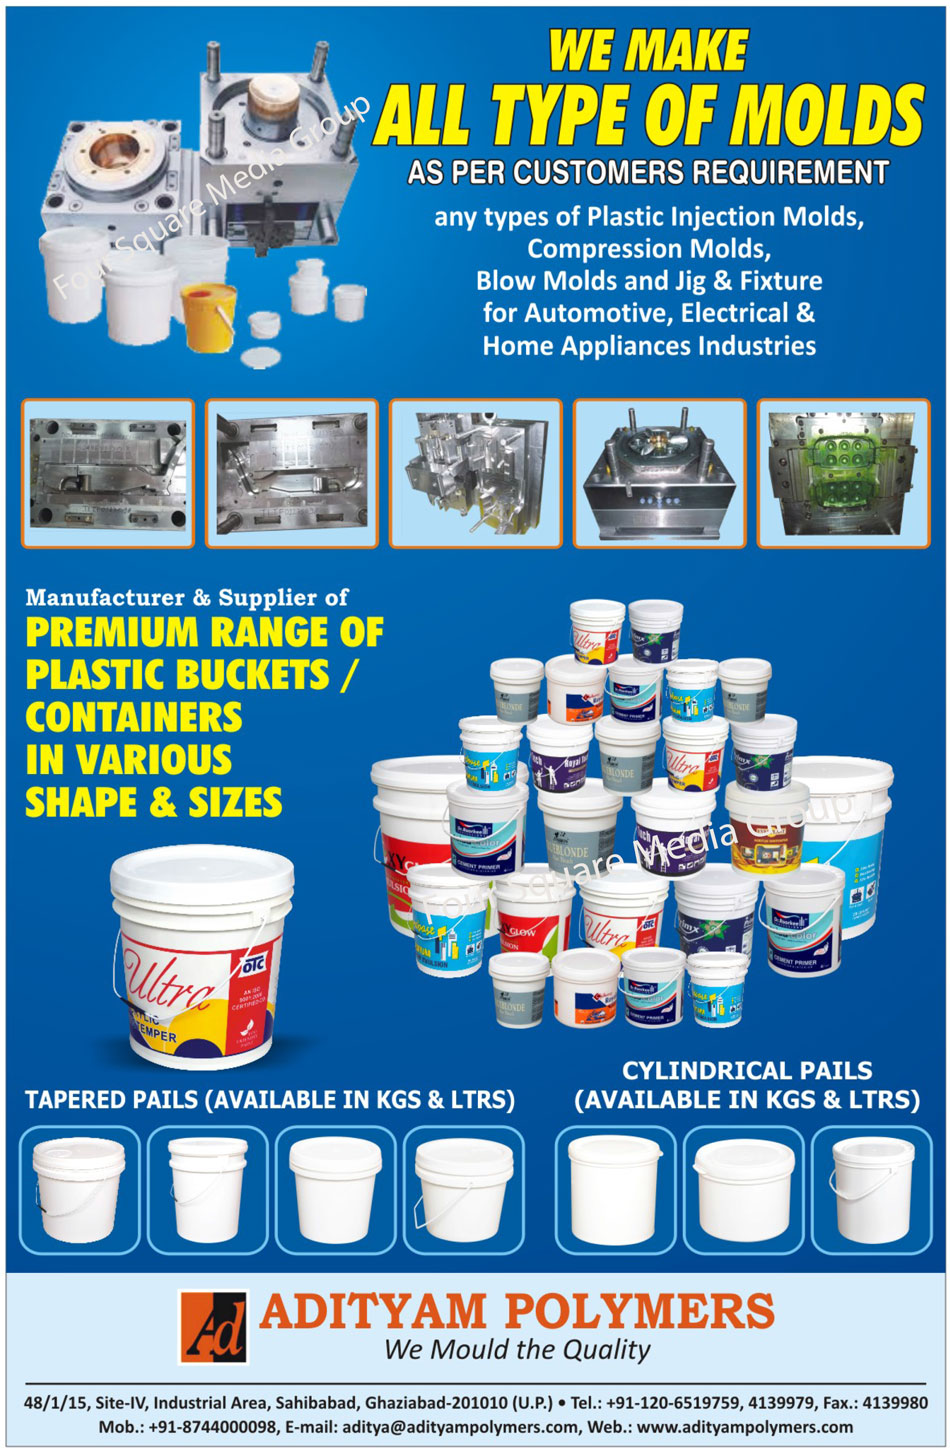 Plastic Buckets, Plastic Containers, Cylindrical Pails, Tapered Pails, Plastic Container, Plastic Moulds, Plastic Molds